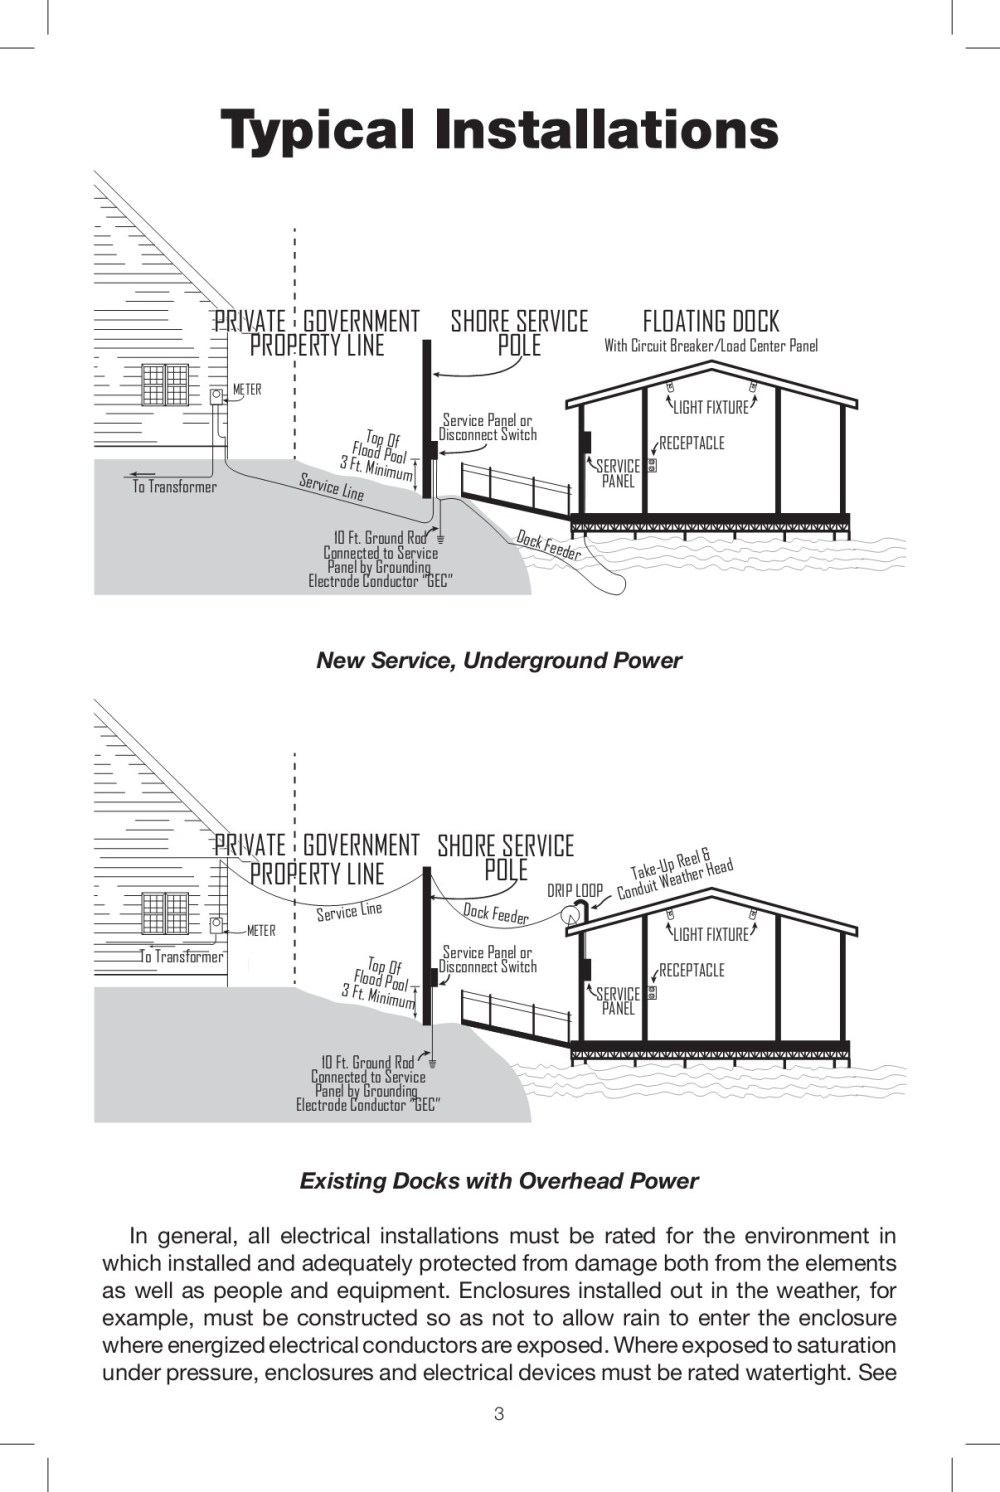 medium resolution of dock electrical systems 03 june 2013 pages 1 12 text version anyflip